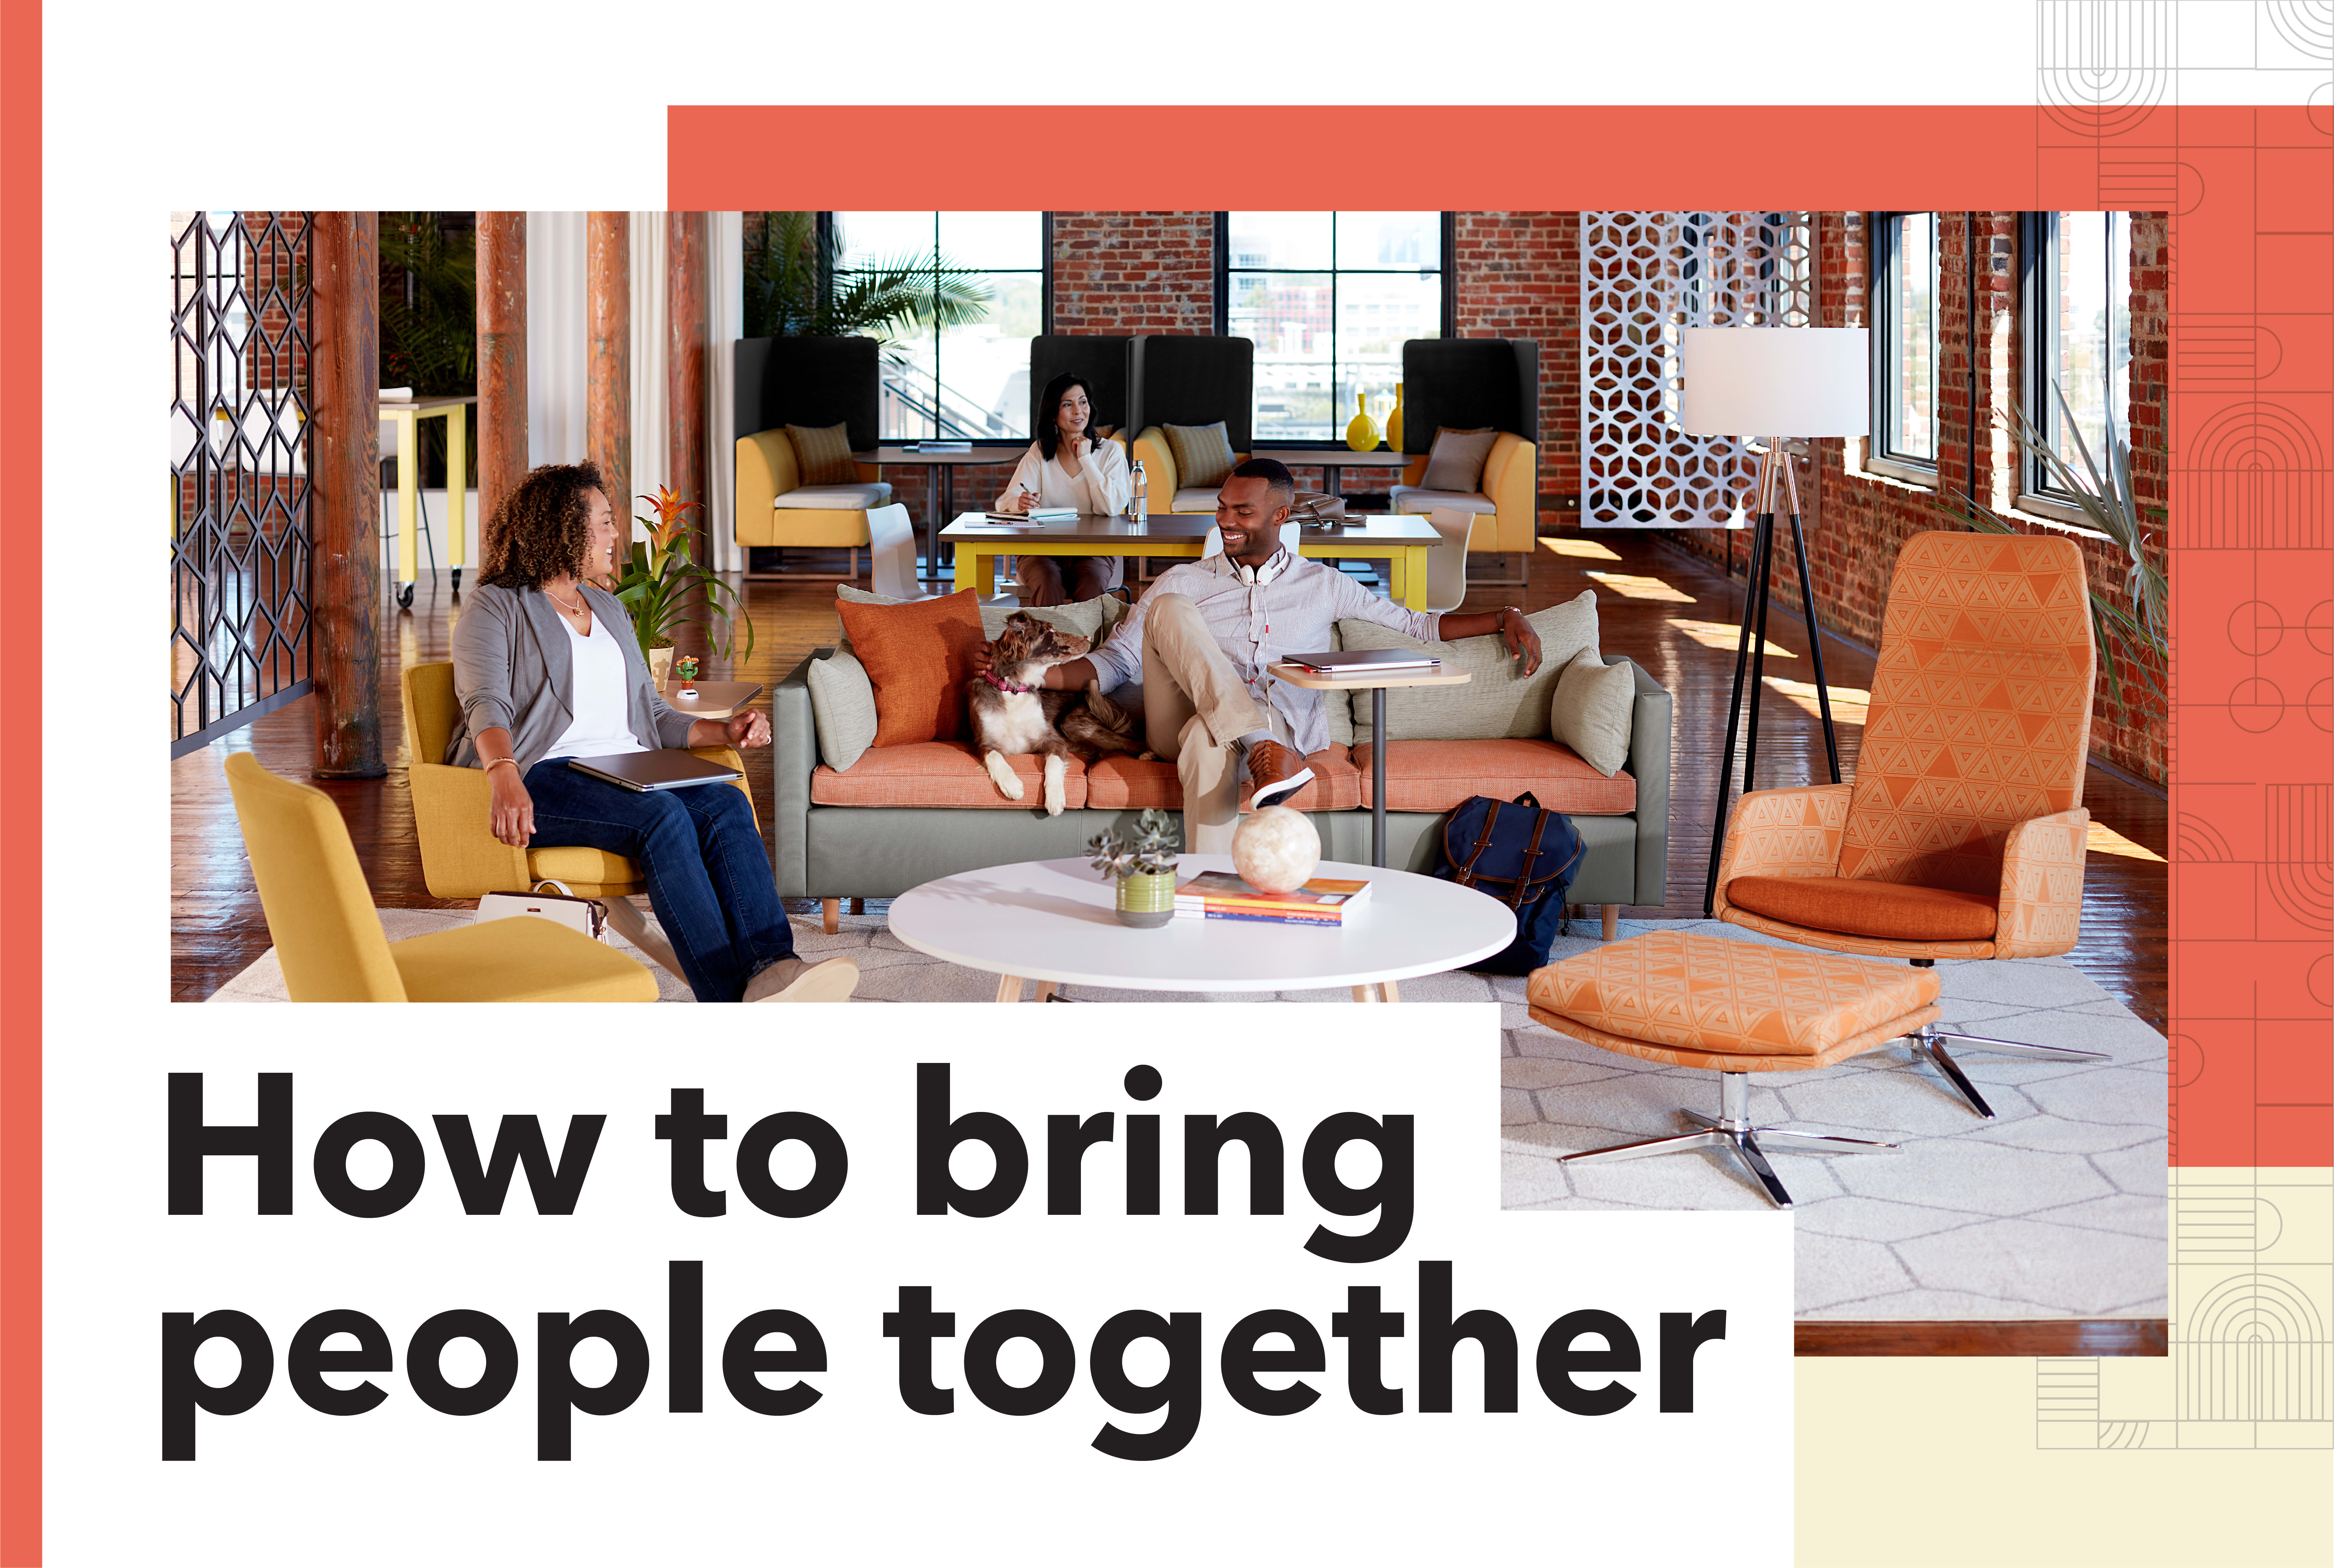 How to bring people together